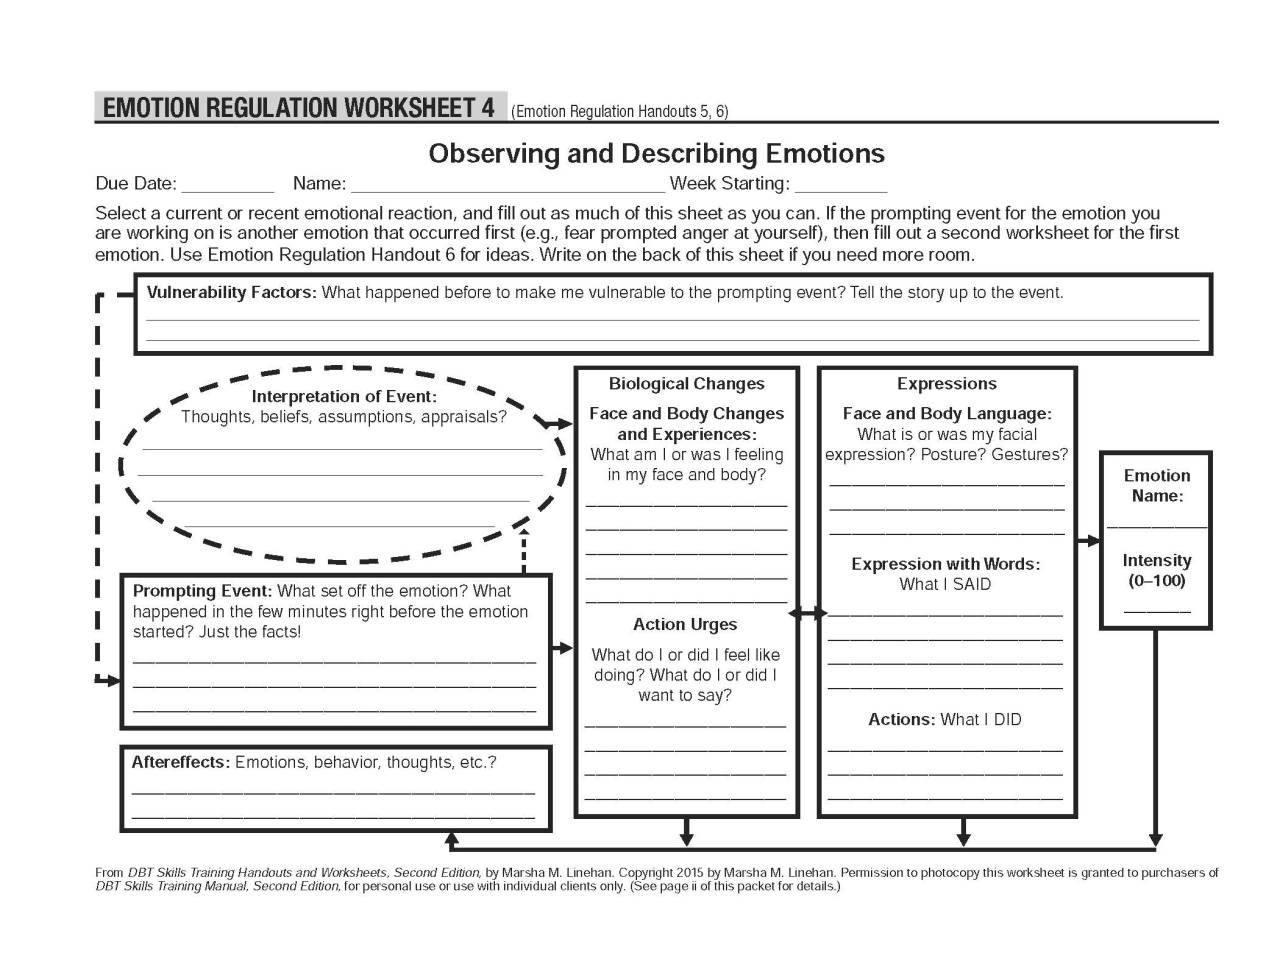 Worksheets Emotional Regulation Worksheets healing schemas dbt self help resources observing and describing emotions these worksheets accompany the emotion regulation handout 6 also look a